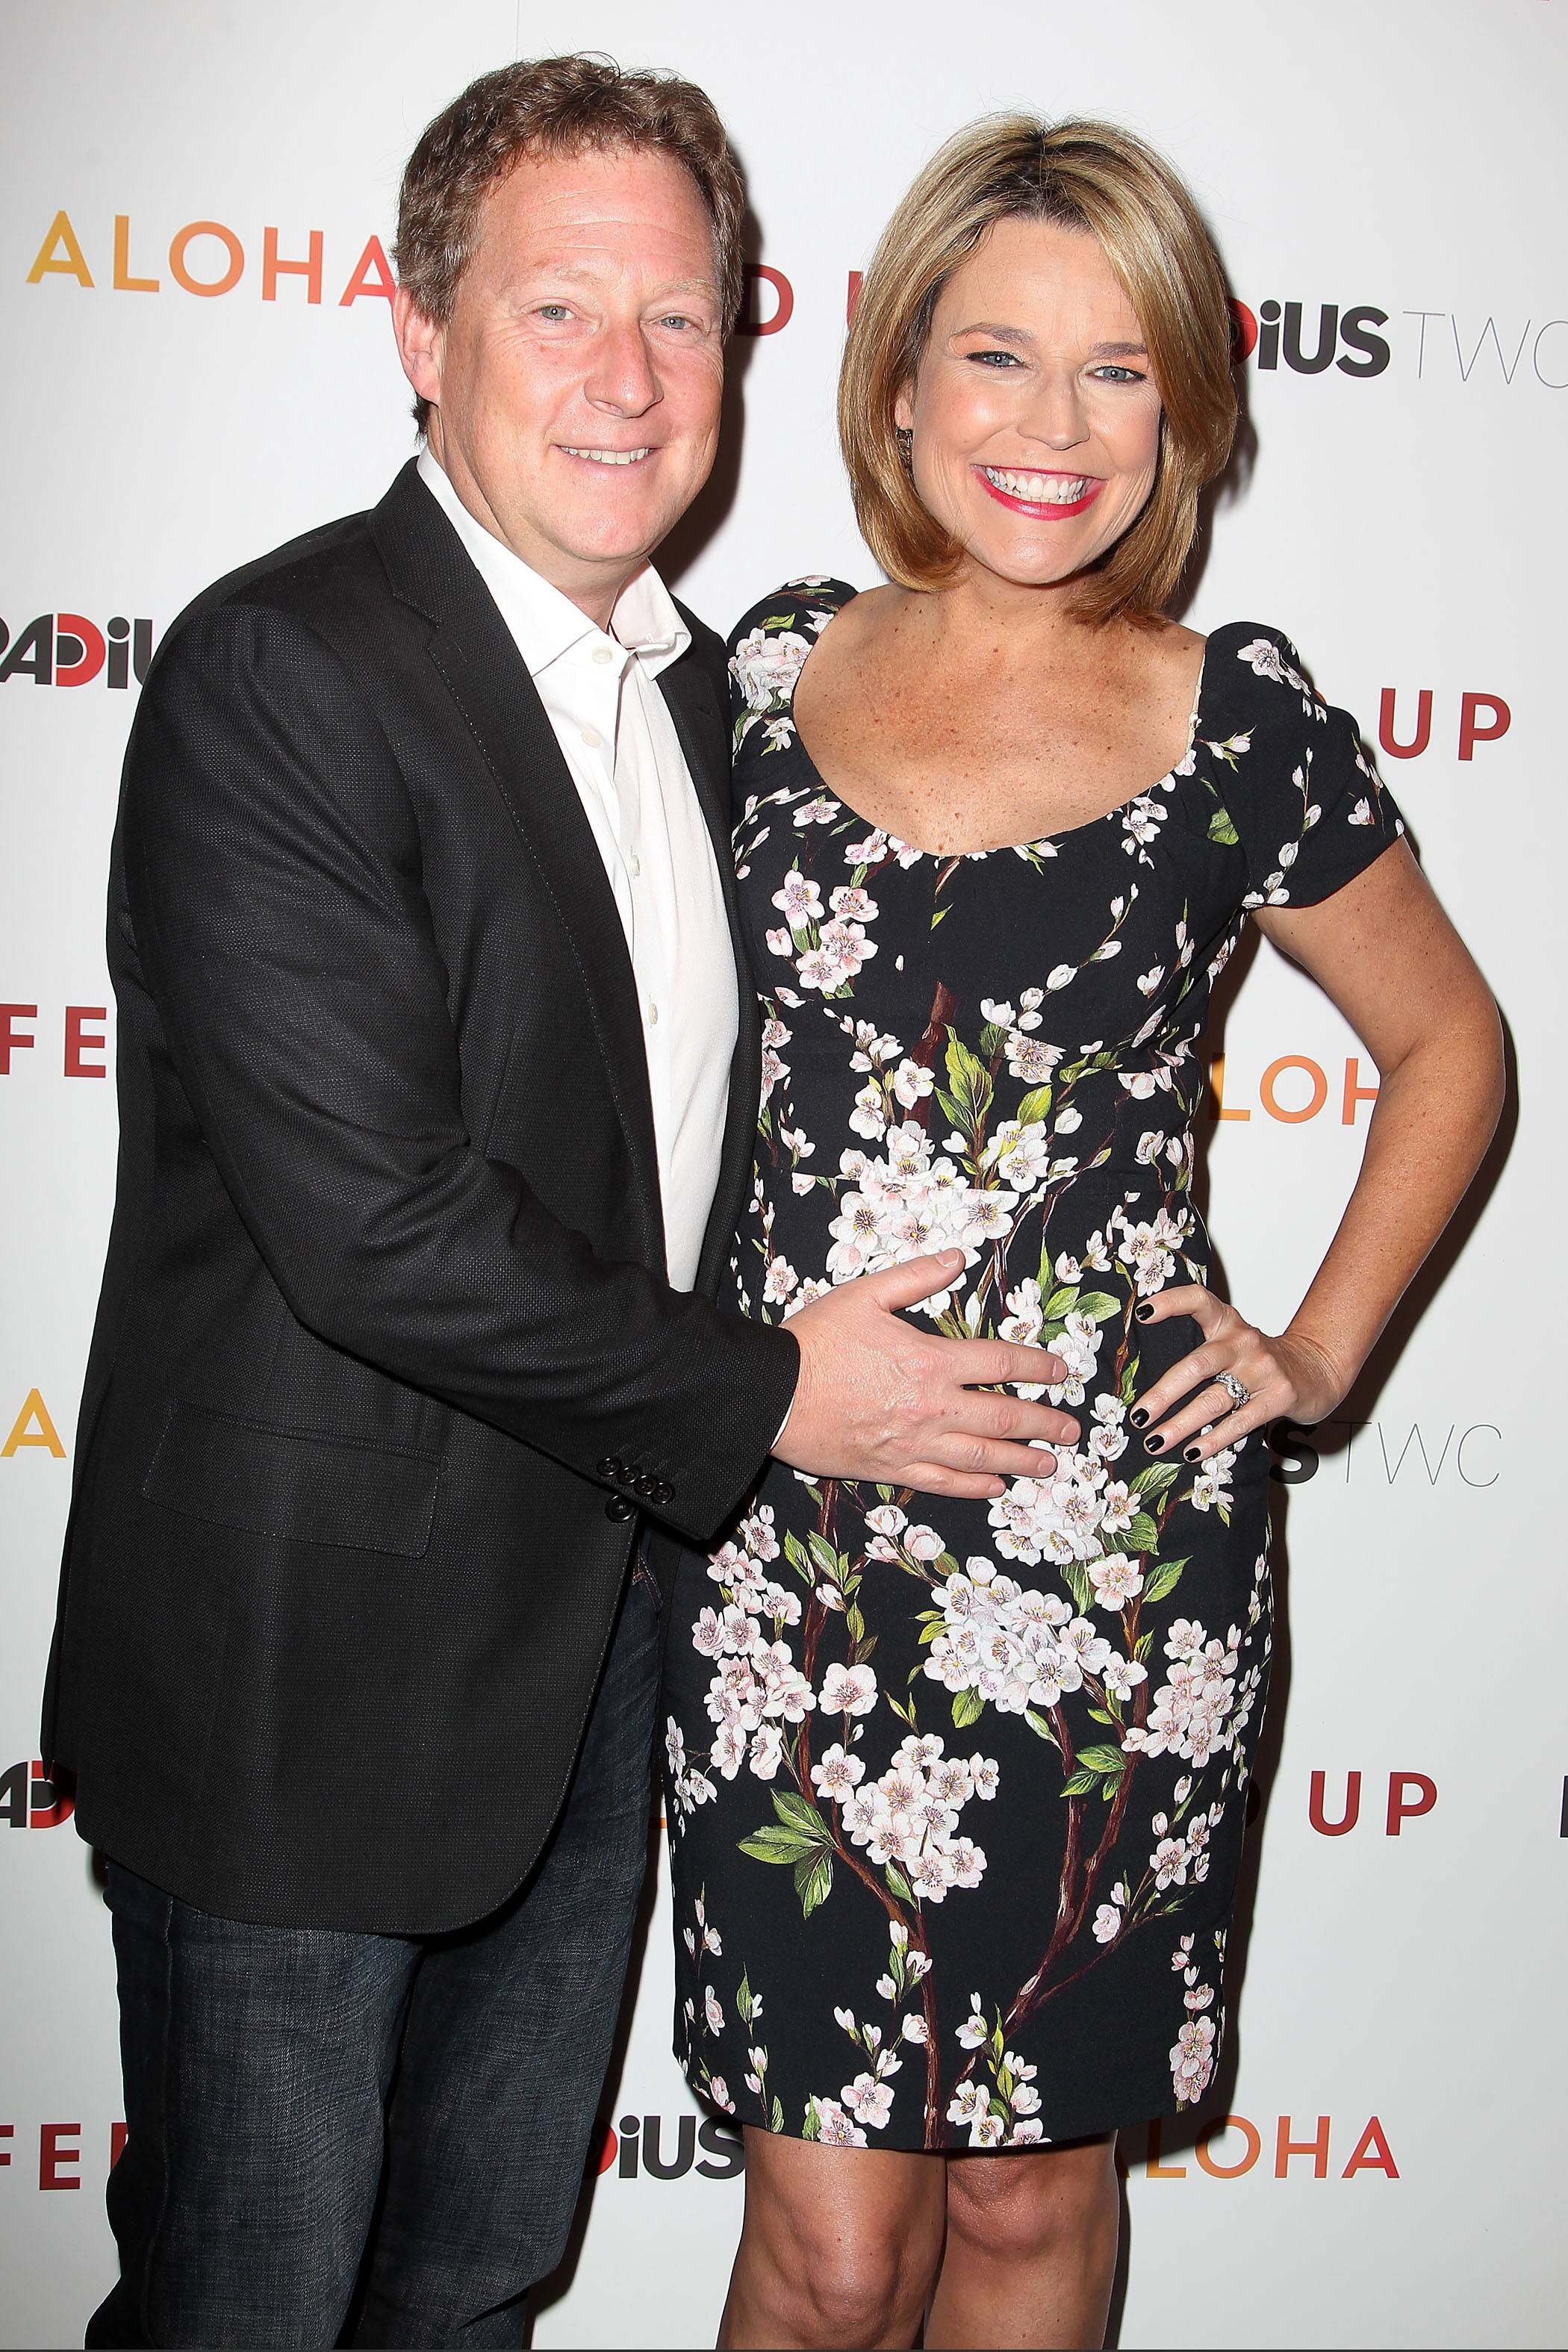 Savannah Guthrie gave birth to daughter Vale Guthrie Feldman on Wednesday in New York. Guthrie is married to communications strategist Michael Feldman.